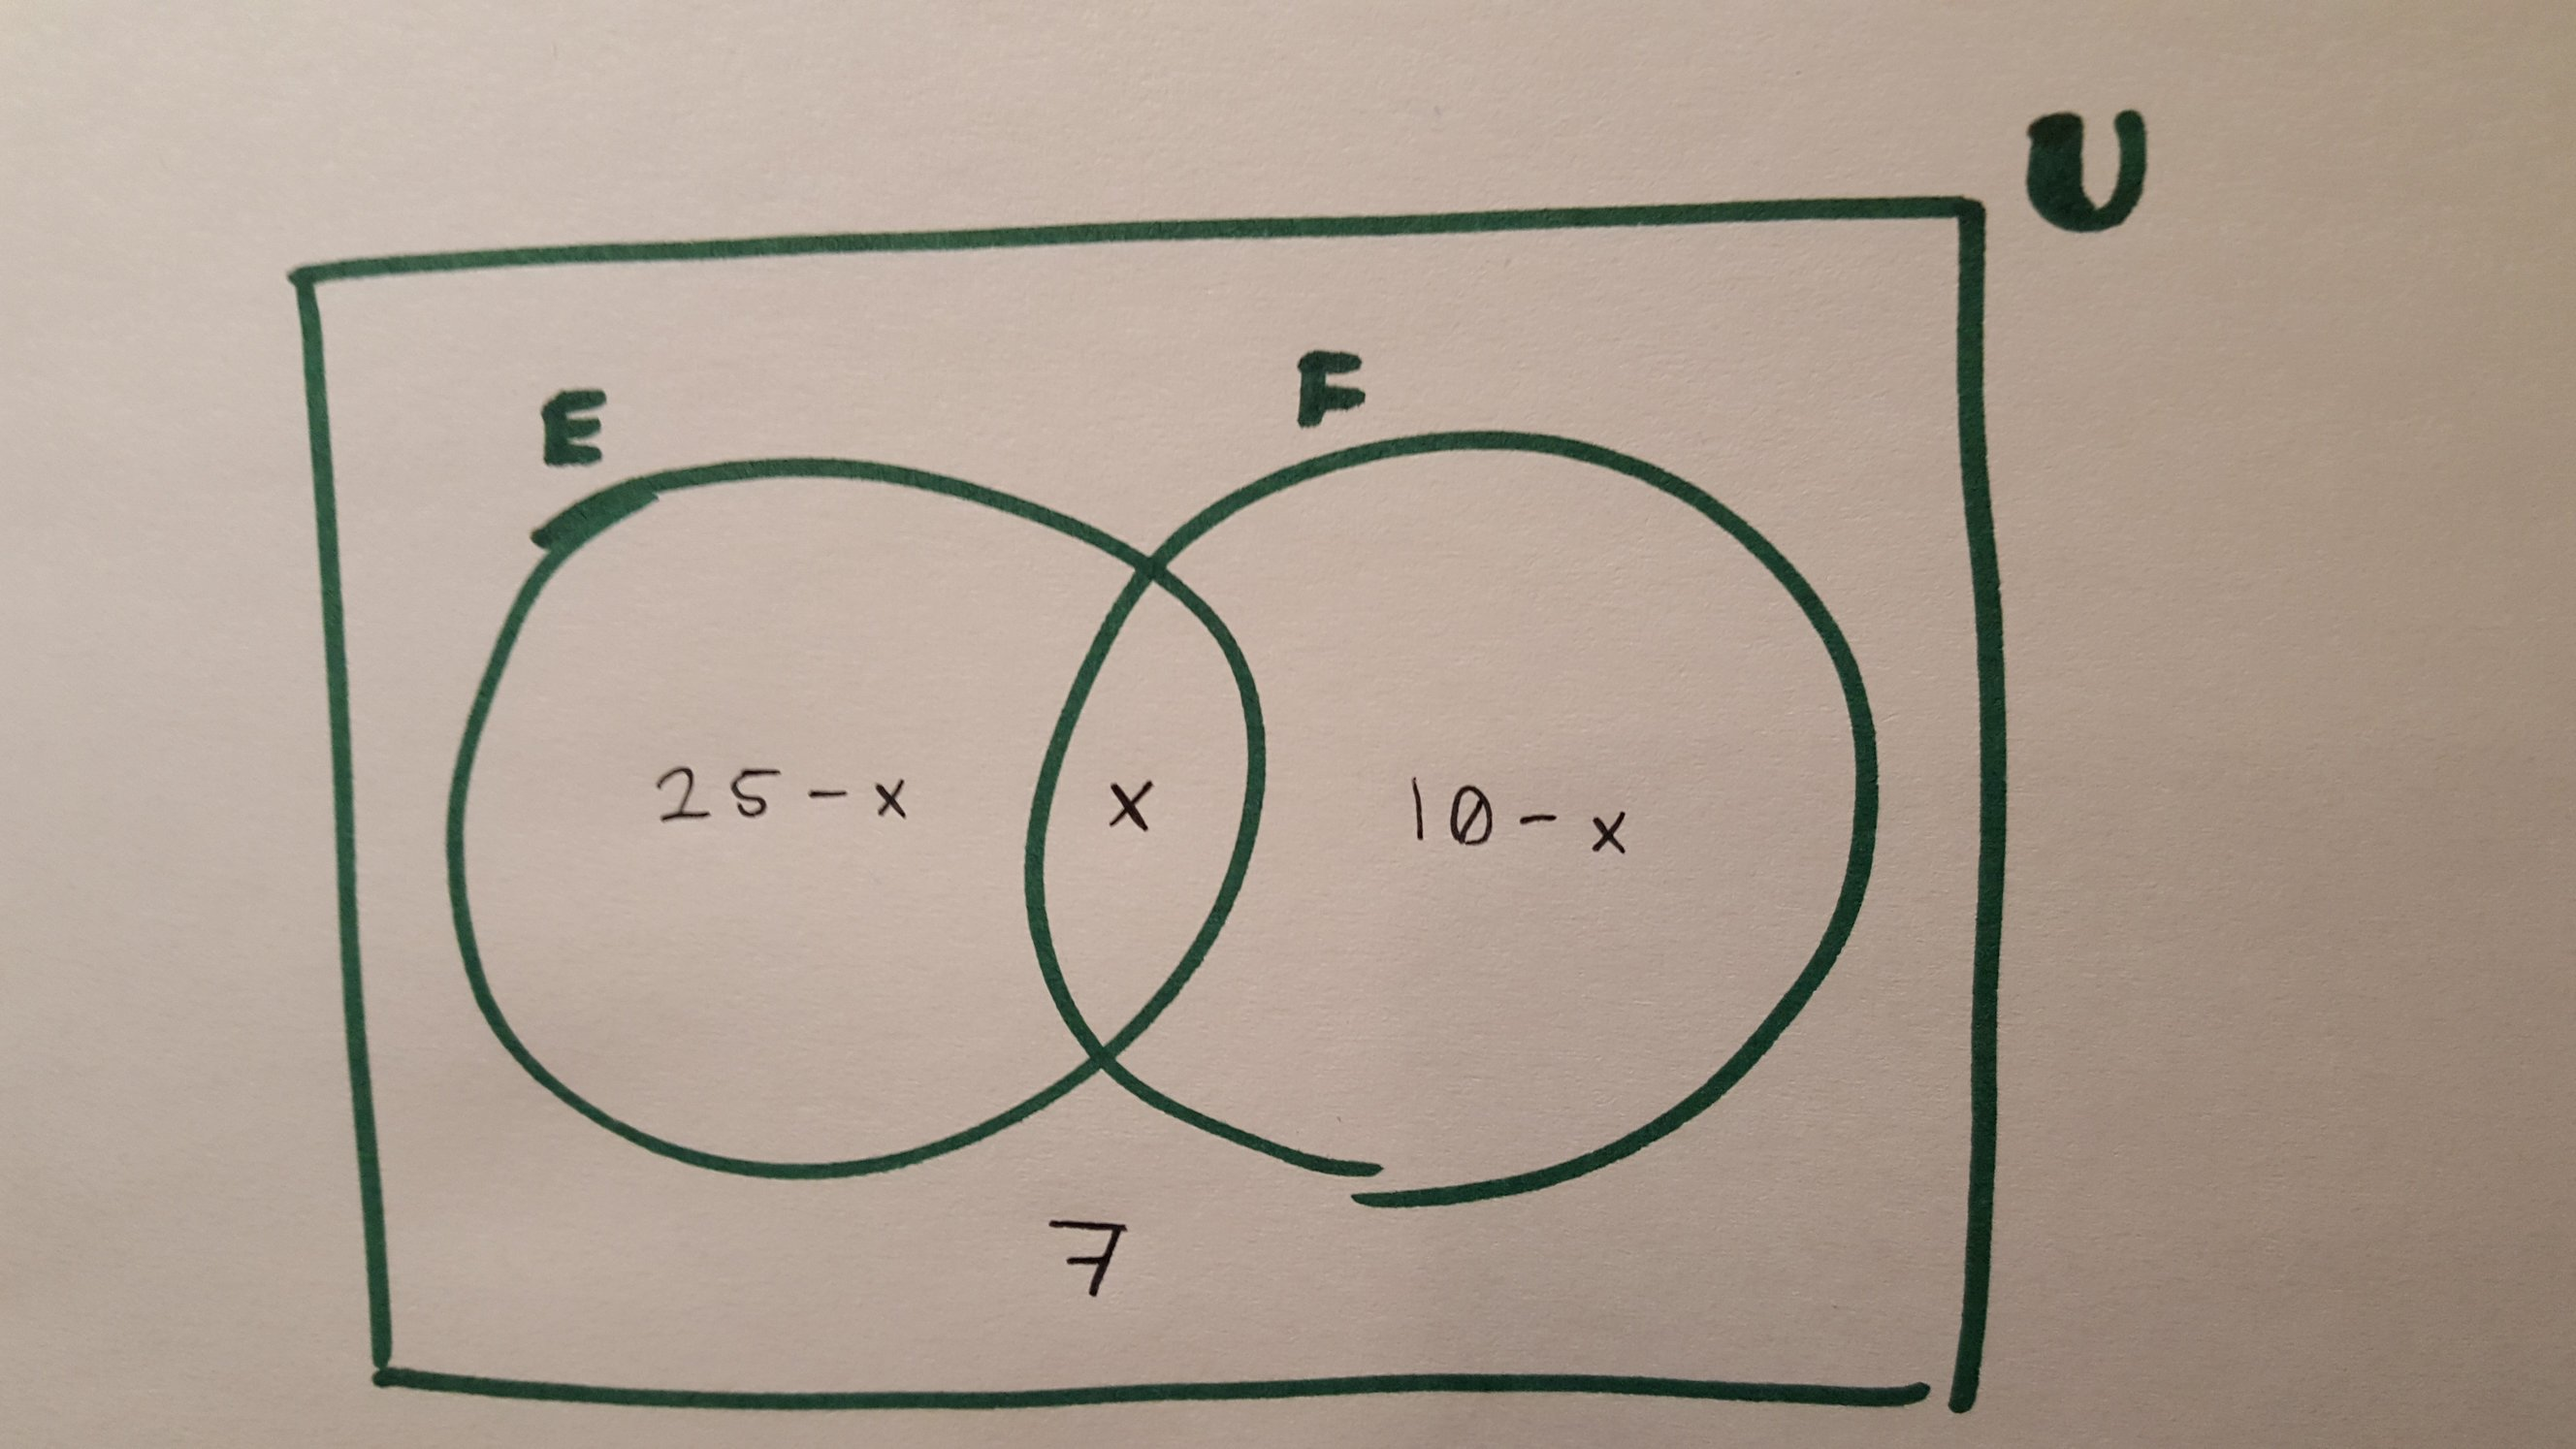 Solving Set Theory Exercise Formally A Different Way